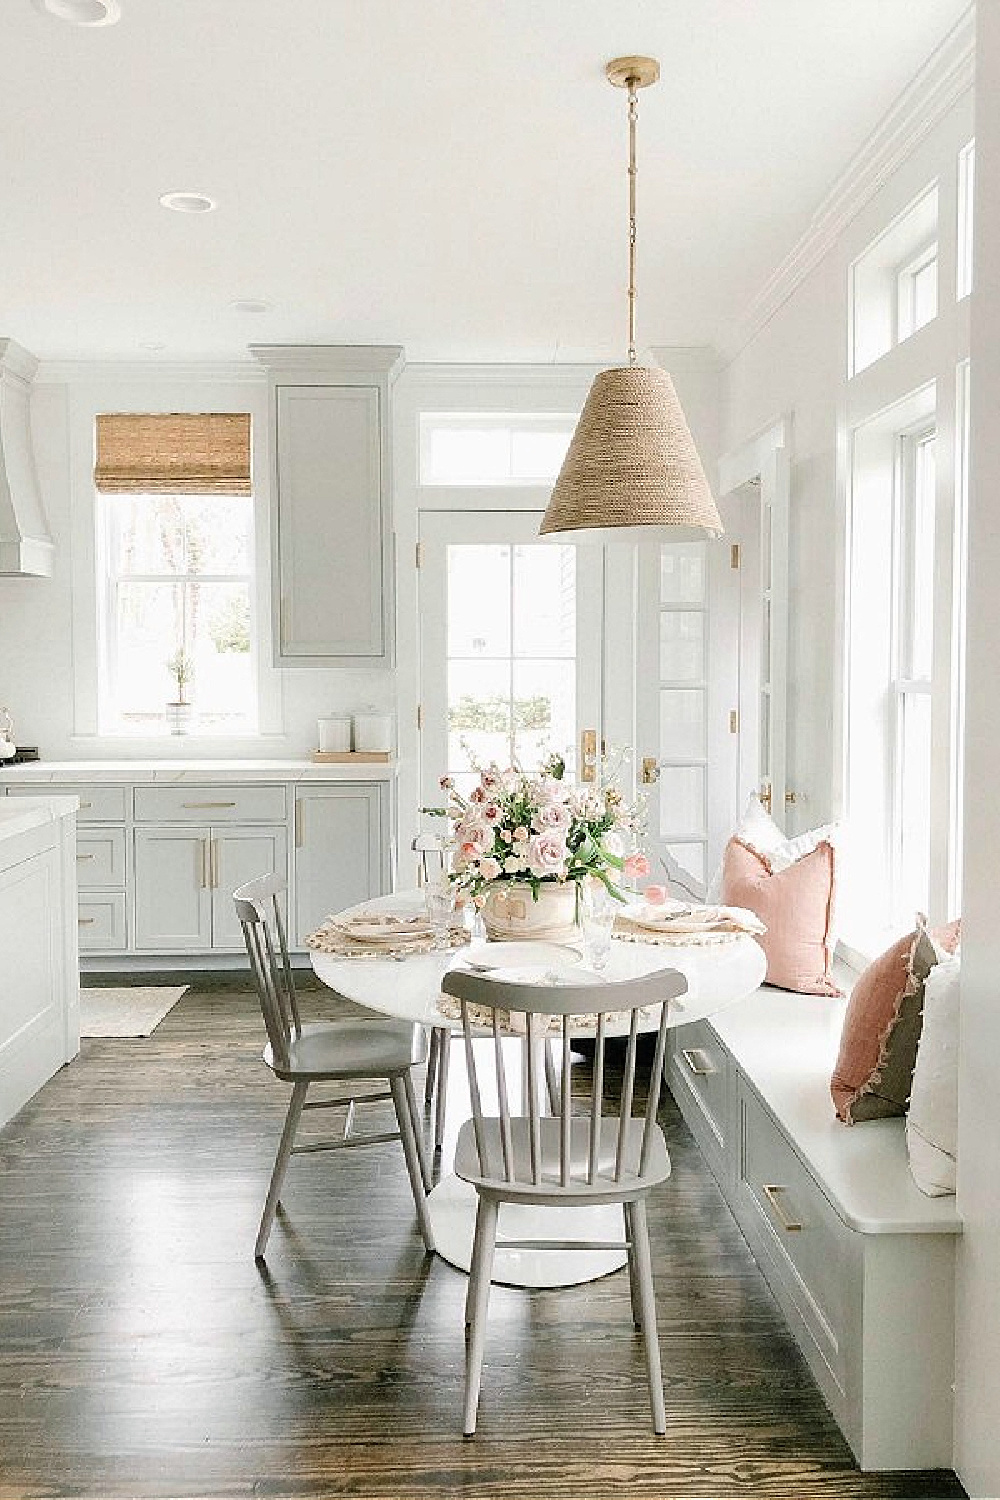 Timeless and classic grey and white kitchen by Finding Lovely with its window seat breakfast nook and pink accents!